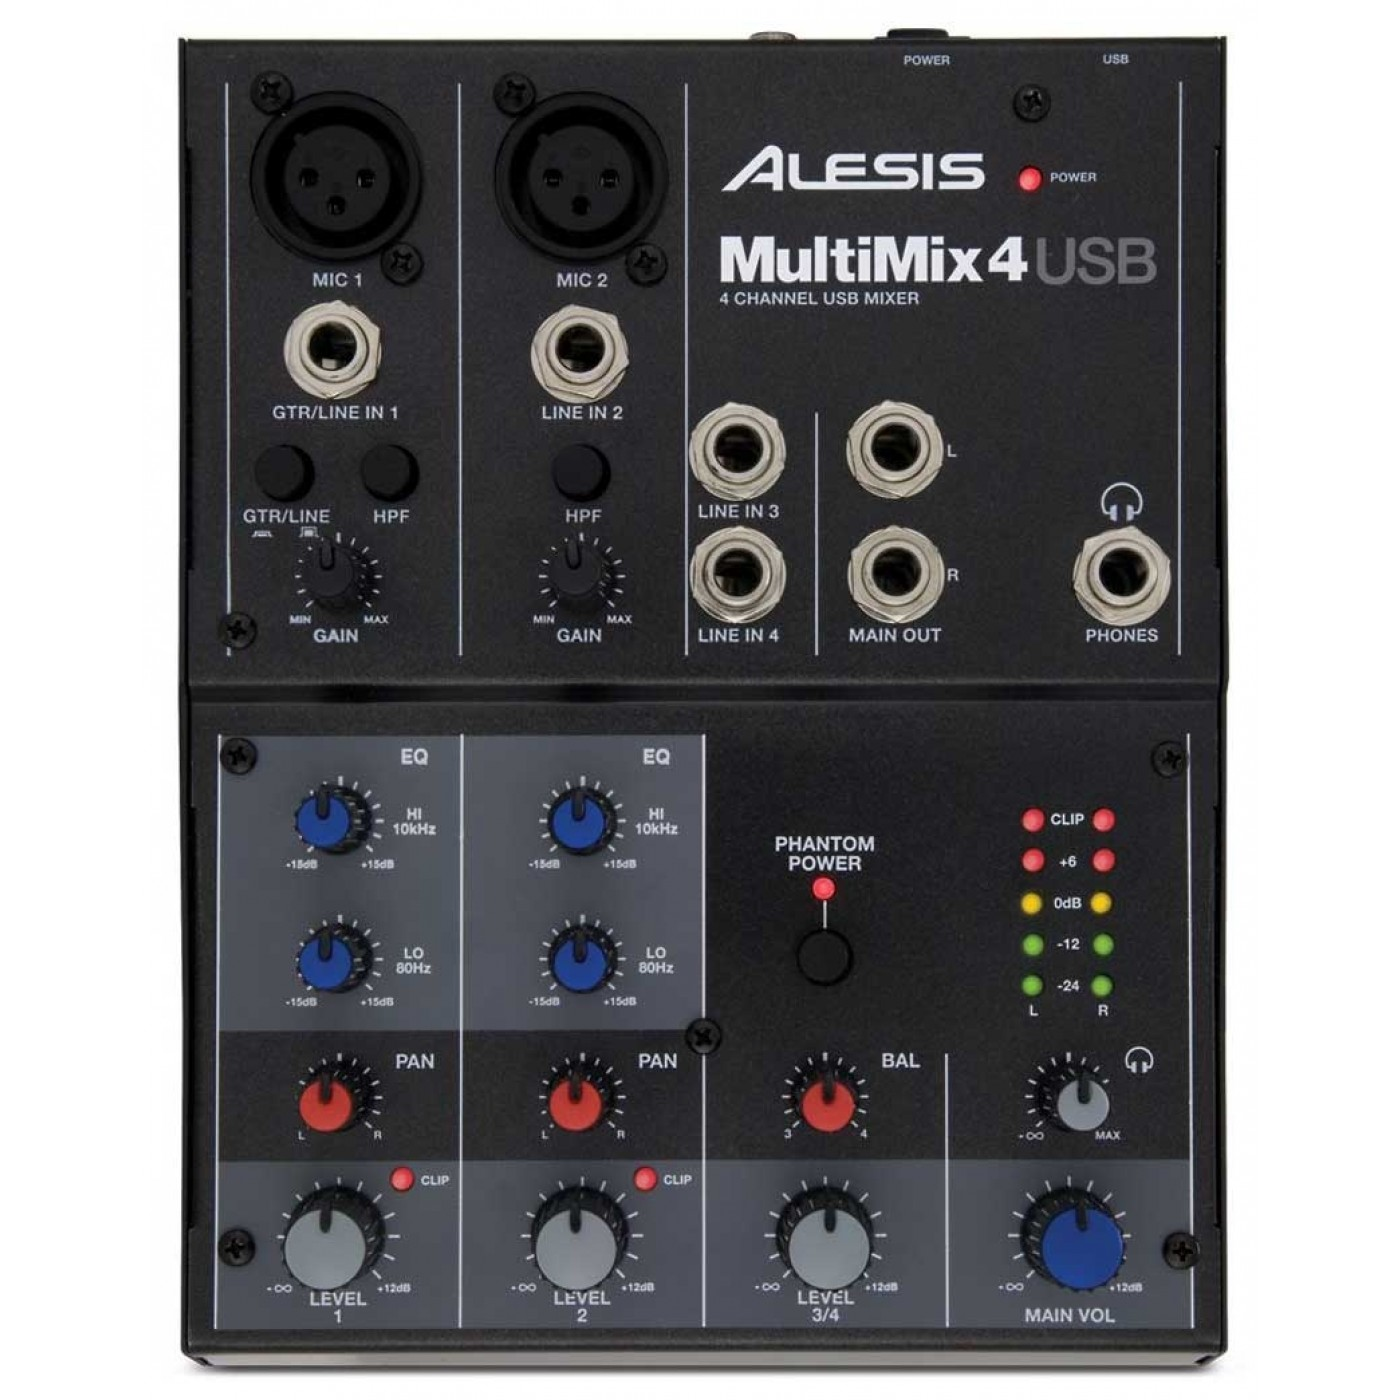 Top Alesis MULTIMIX 4USB | Rage Audio